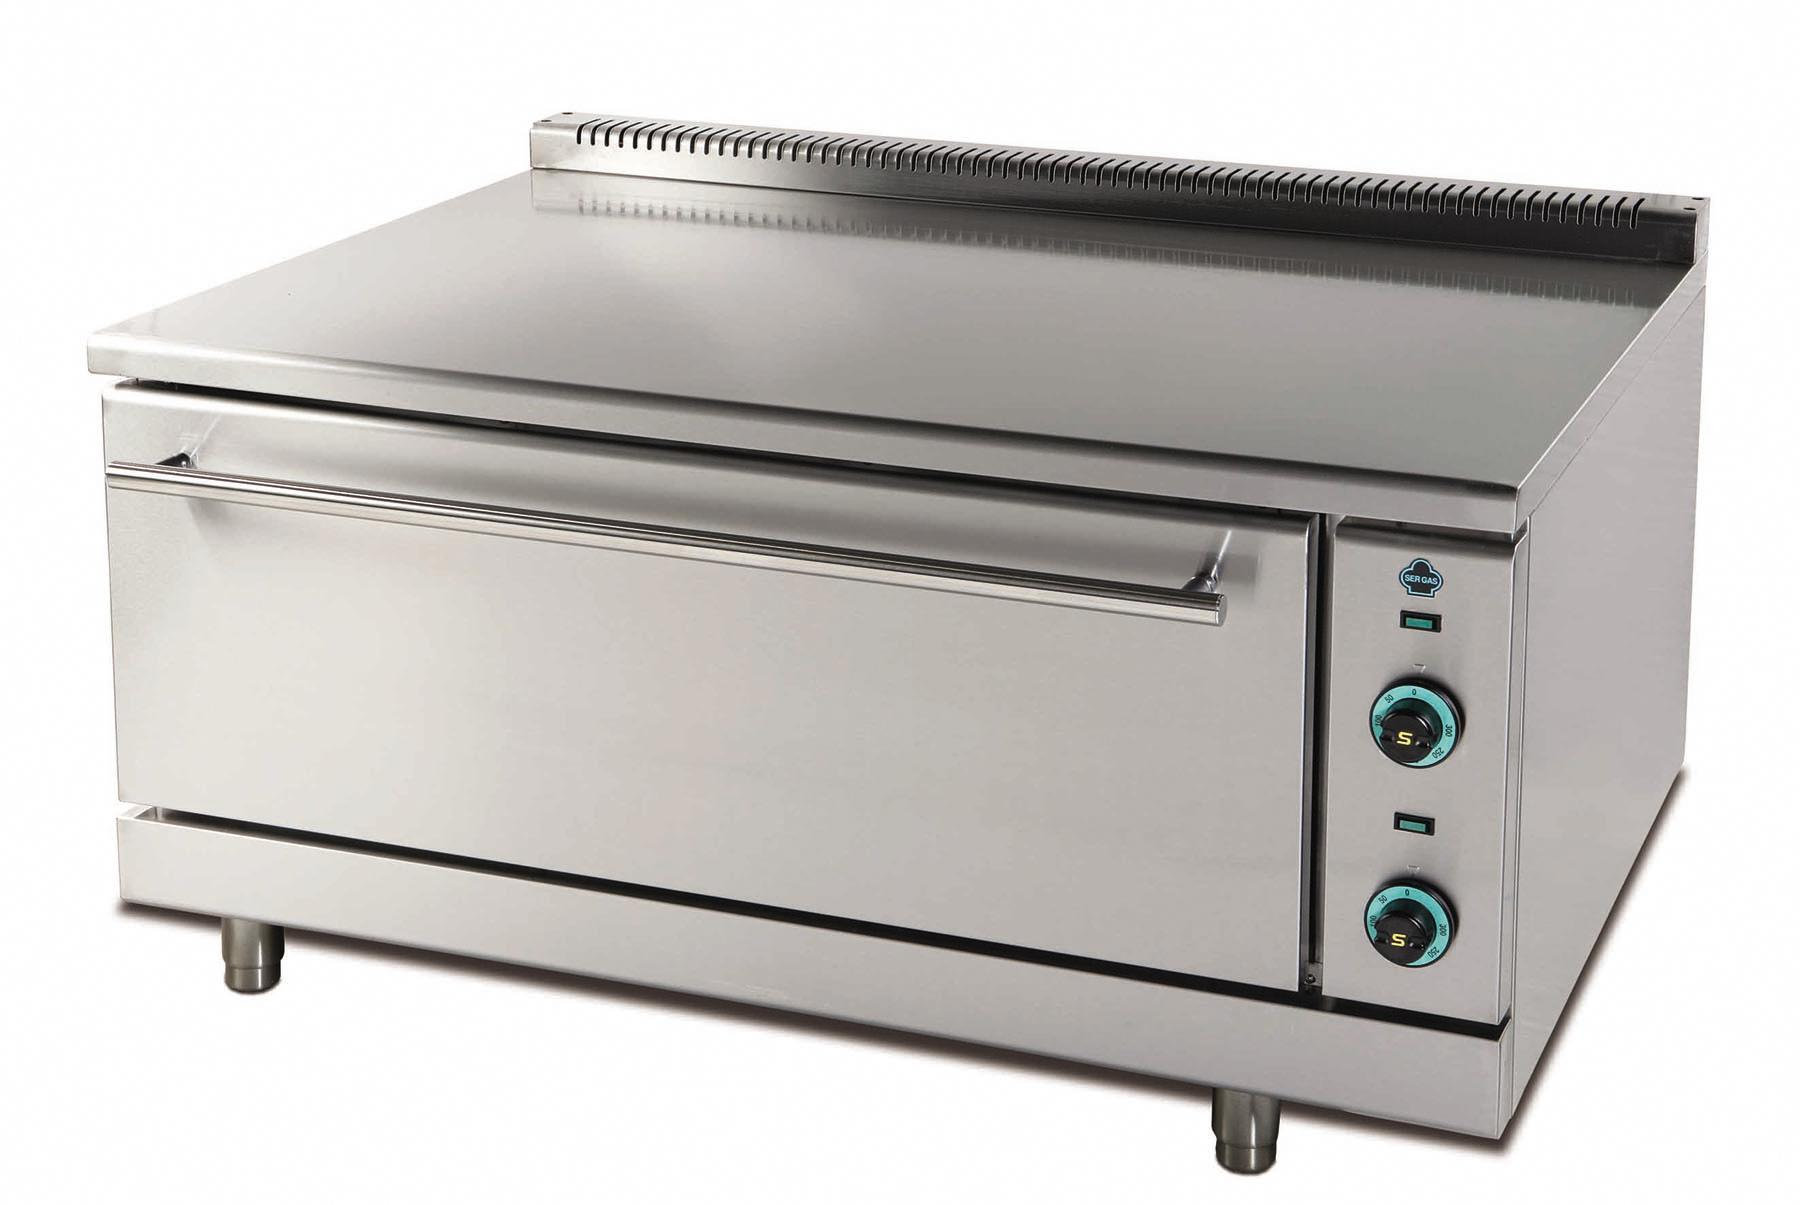 Electric Oven Catering ~ Ovens electric restaurant